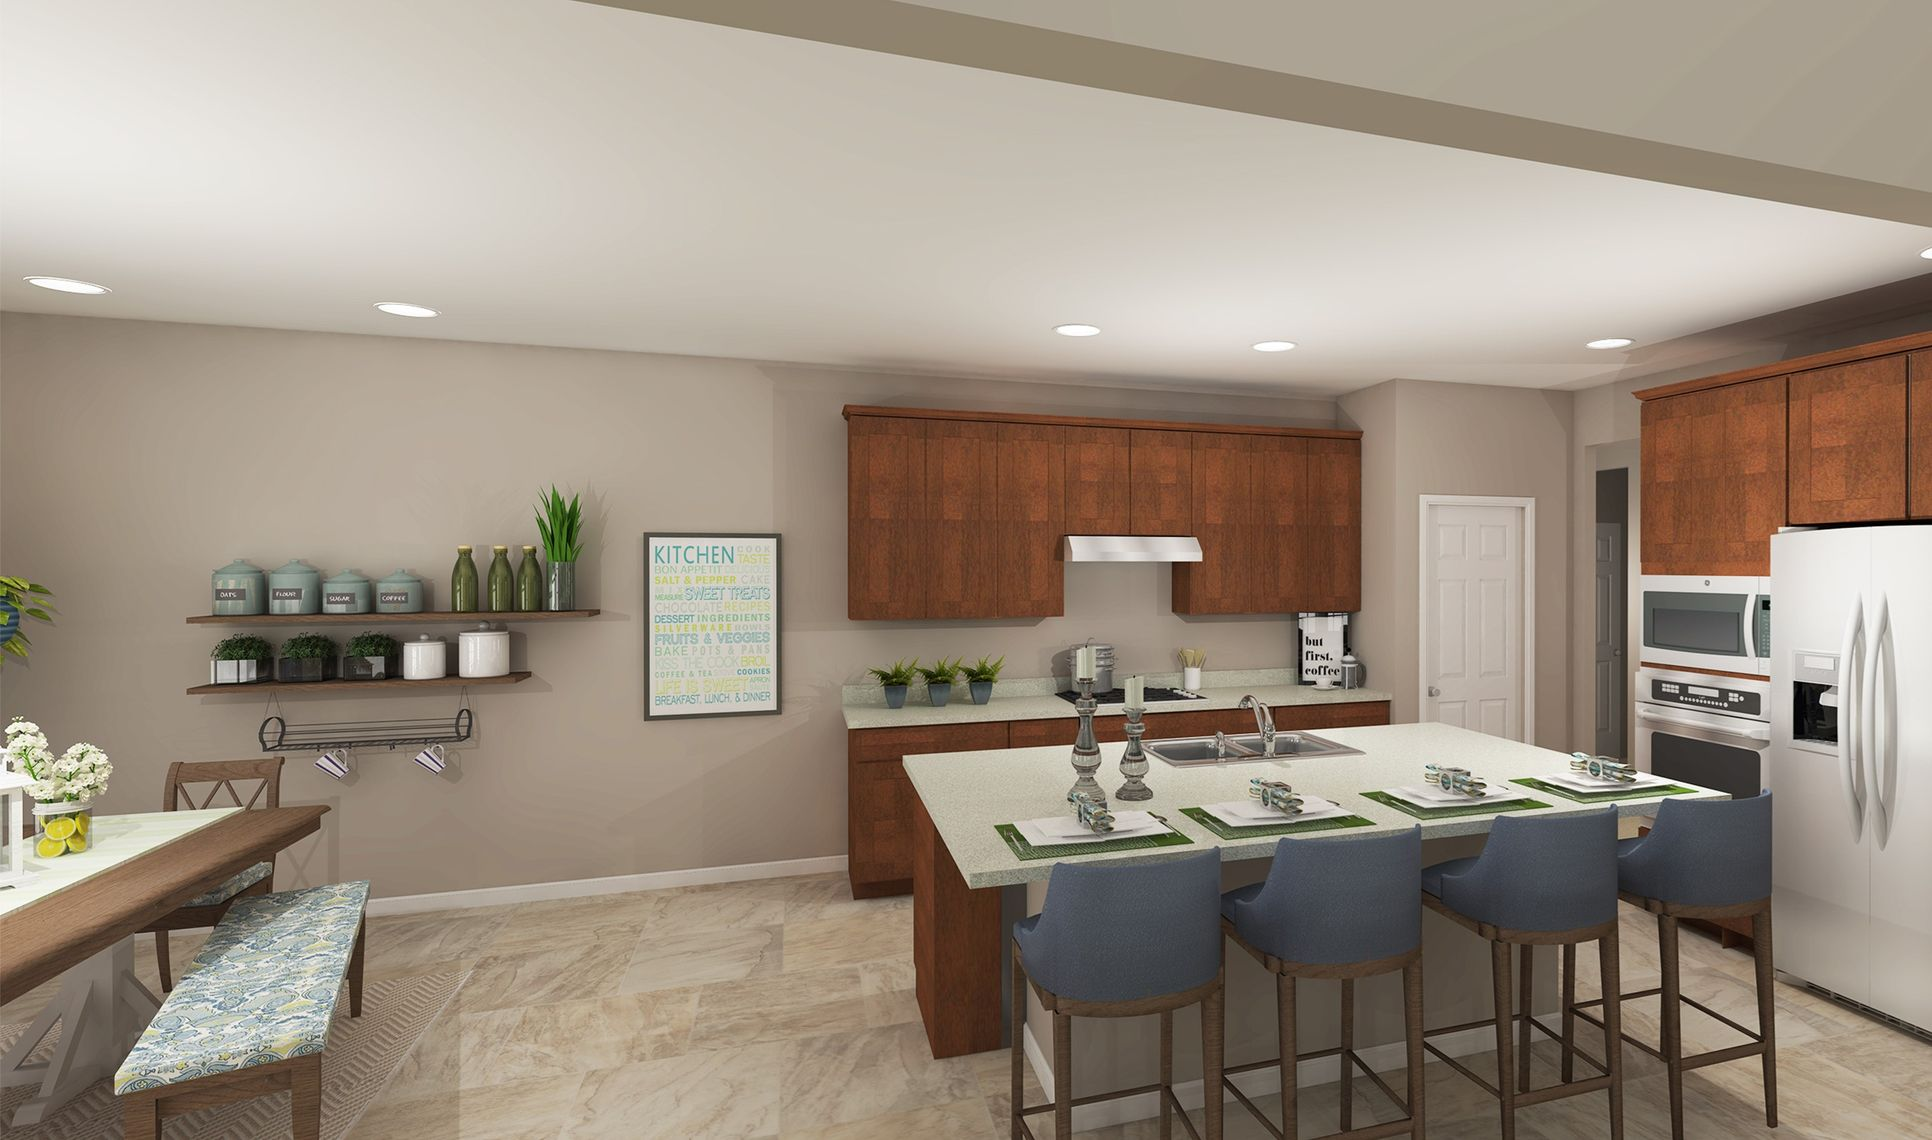 Interior:Expansive kitchen and dining area